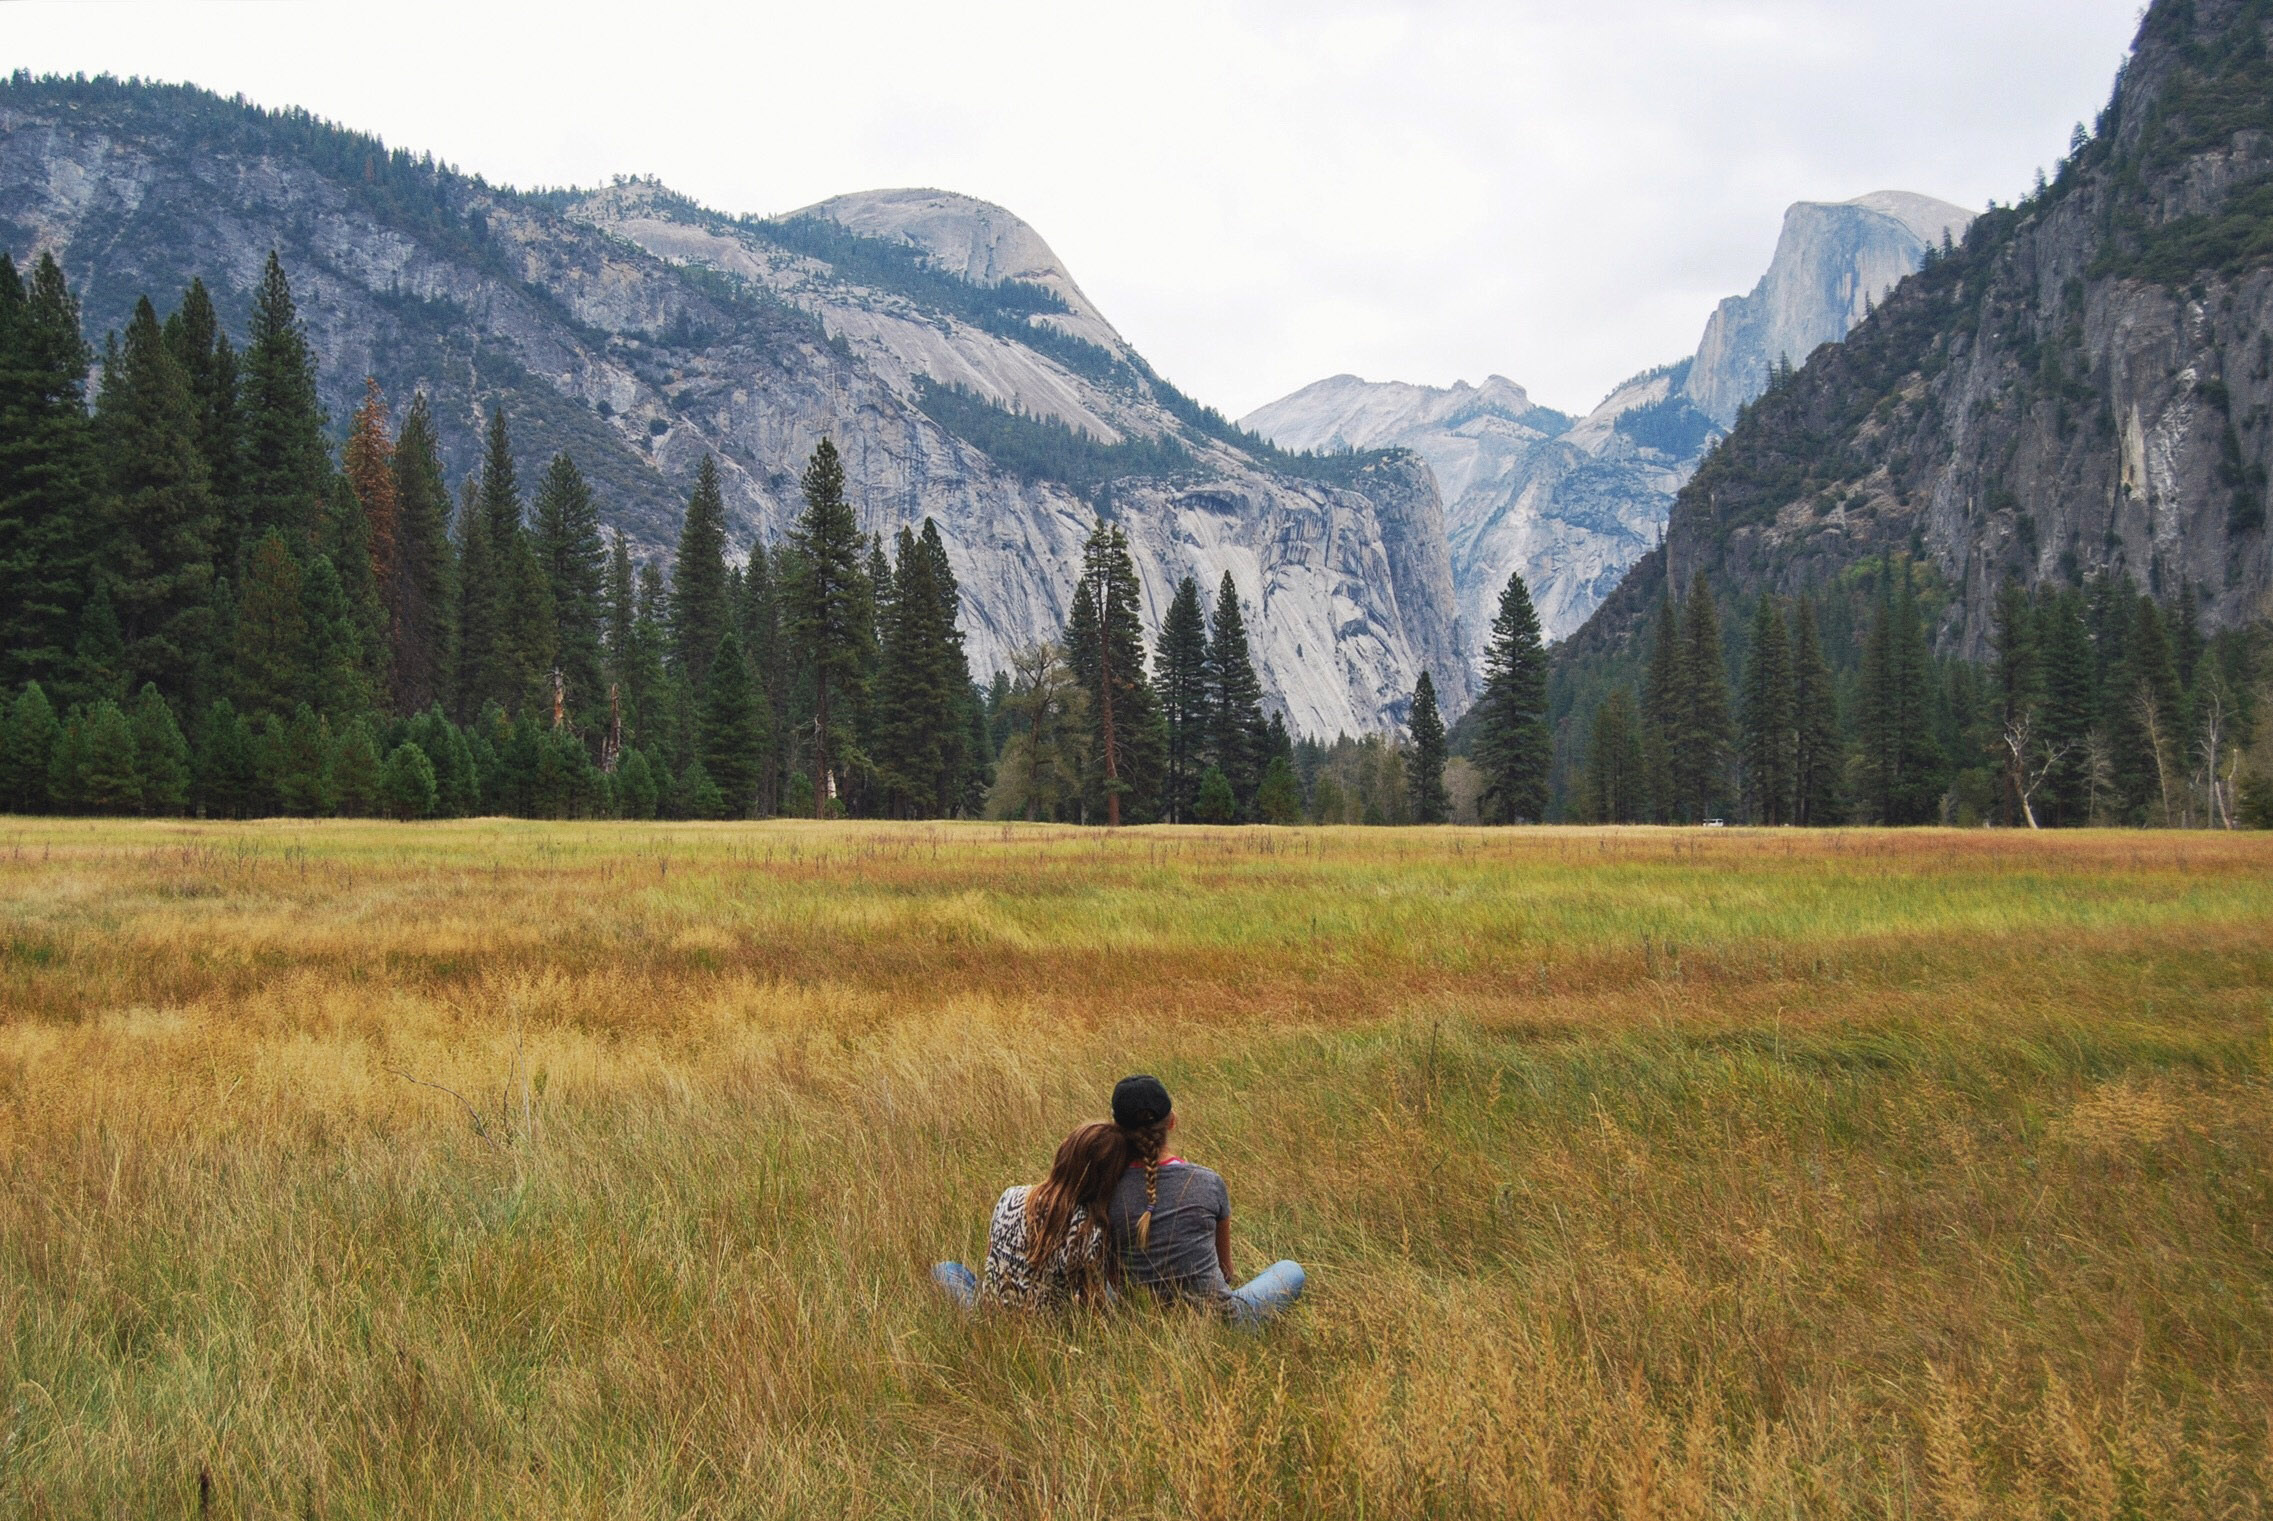 couple-looking-at-landscape-in-yosemite-national-park-california.jpg